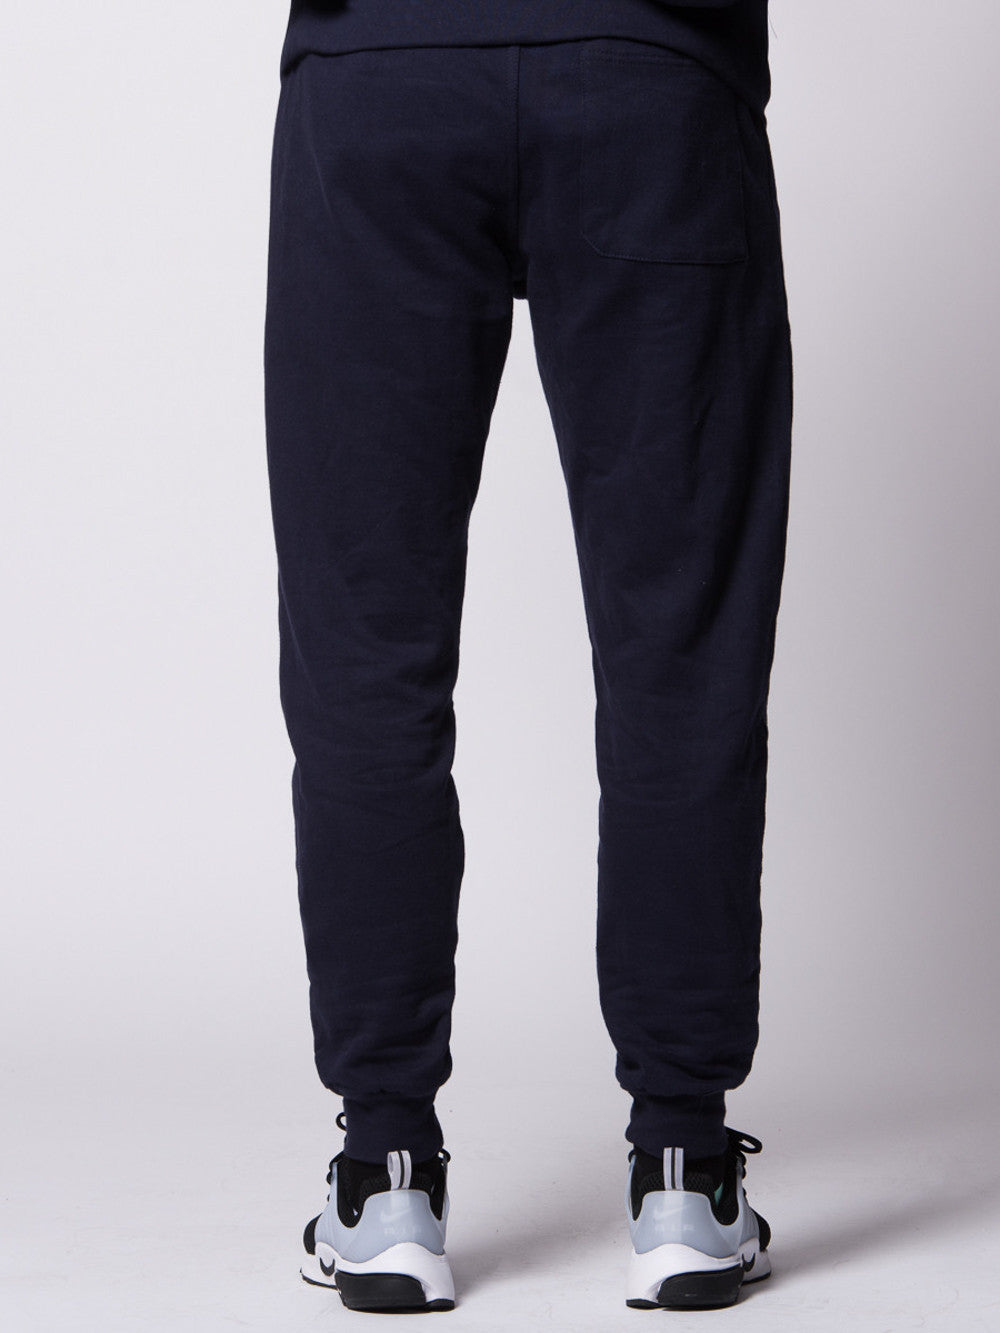 Young and Reckless Mens - Bottoms - Sweatpants Signature Sweatpants- Navy